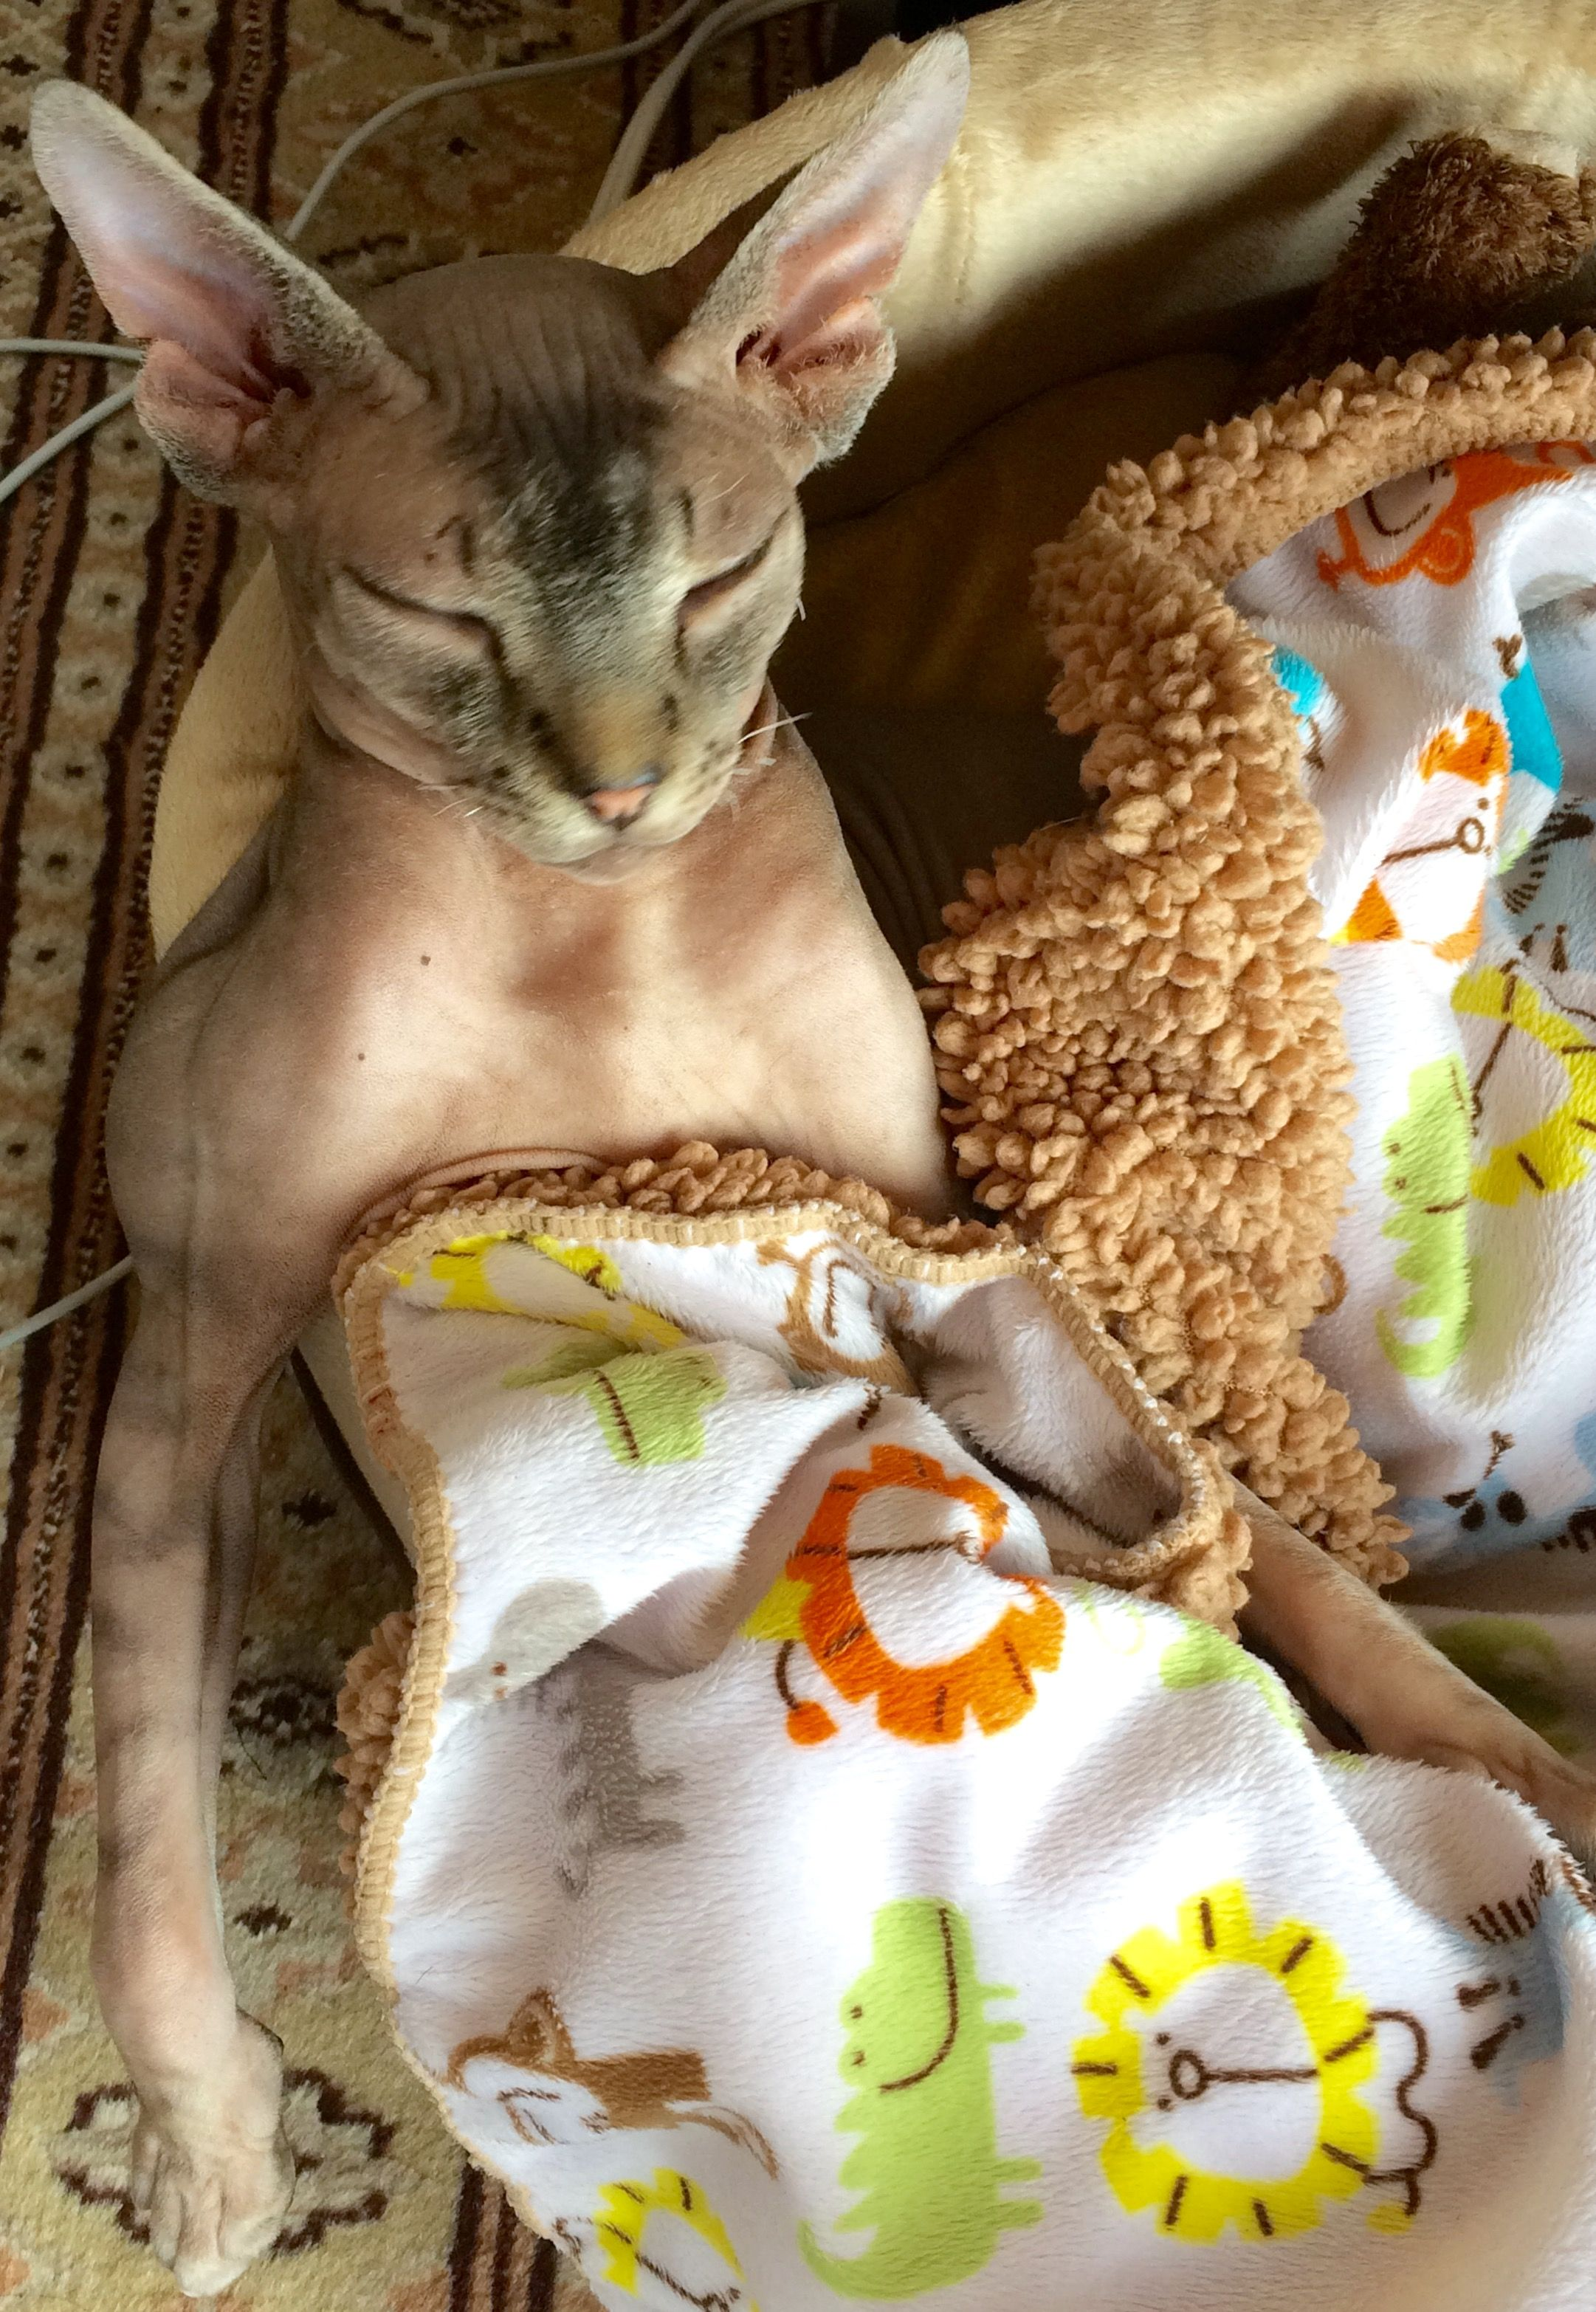 Ohhh Yeah Seriously You Got The Respect Your Sphynx King When He Is Sleeping Lol Mrwilsonthesphynxcat I Am Way To To Devon Rex Cats Hairless Cat Rex Cat